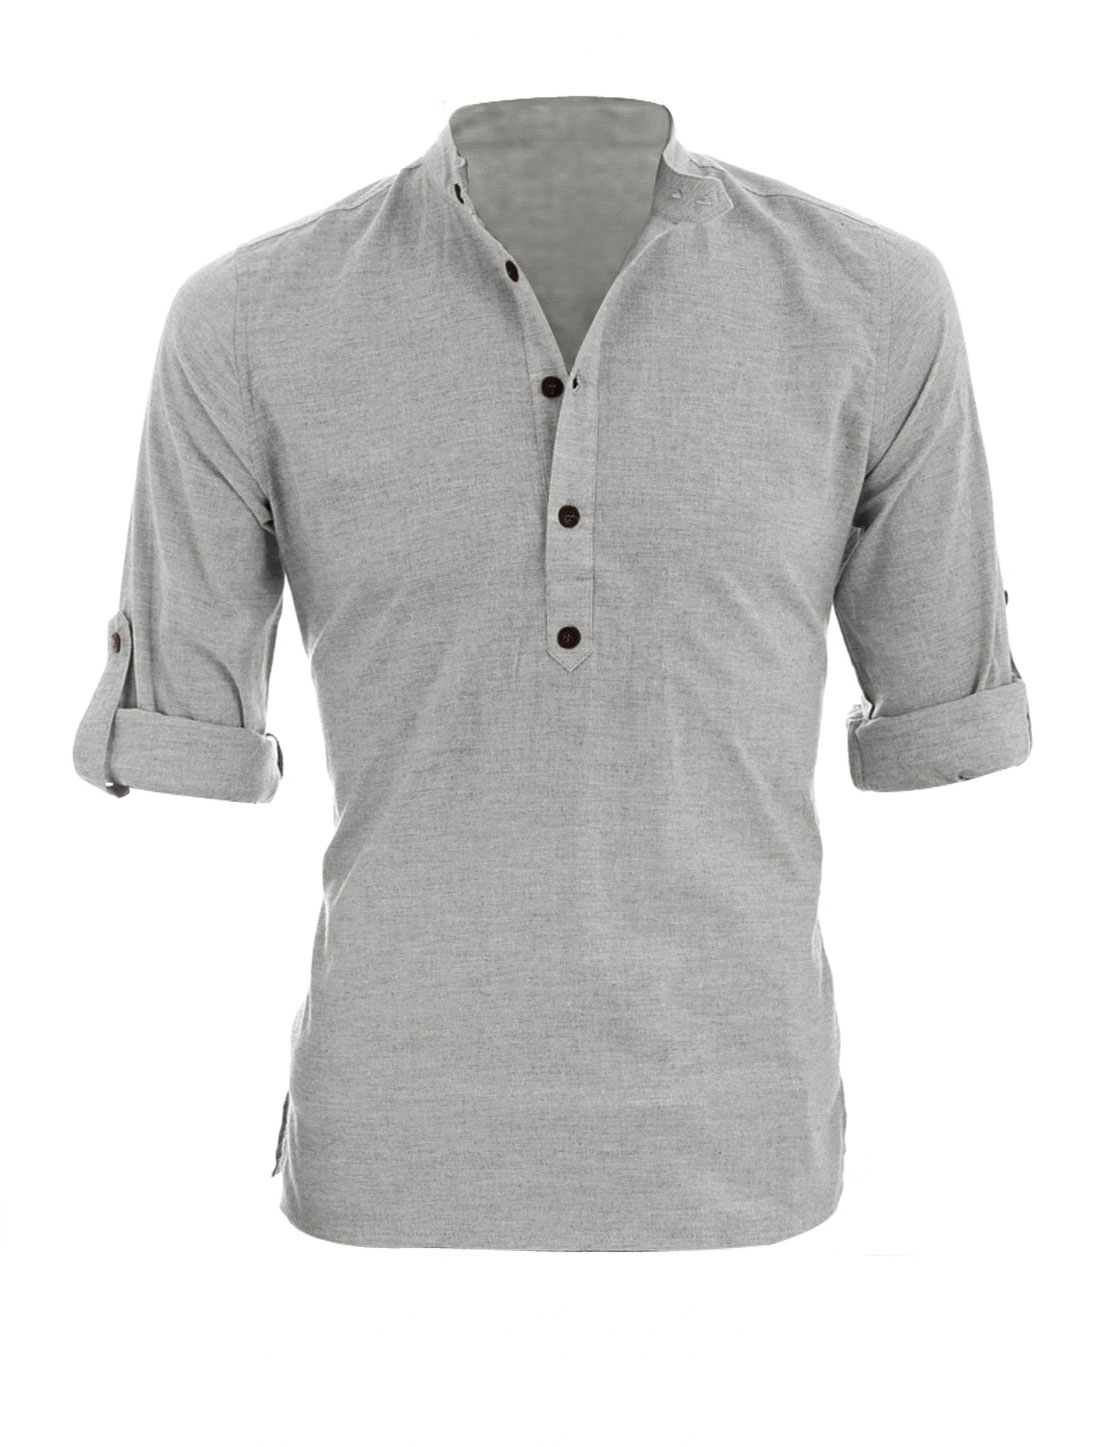 Men Half Button Closed Rolled Sleeves Henley Shirt Light Gray M